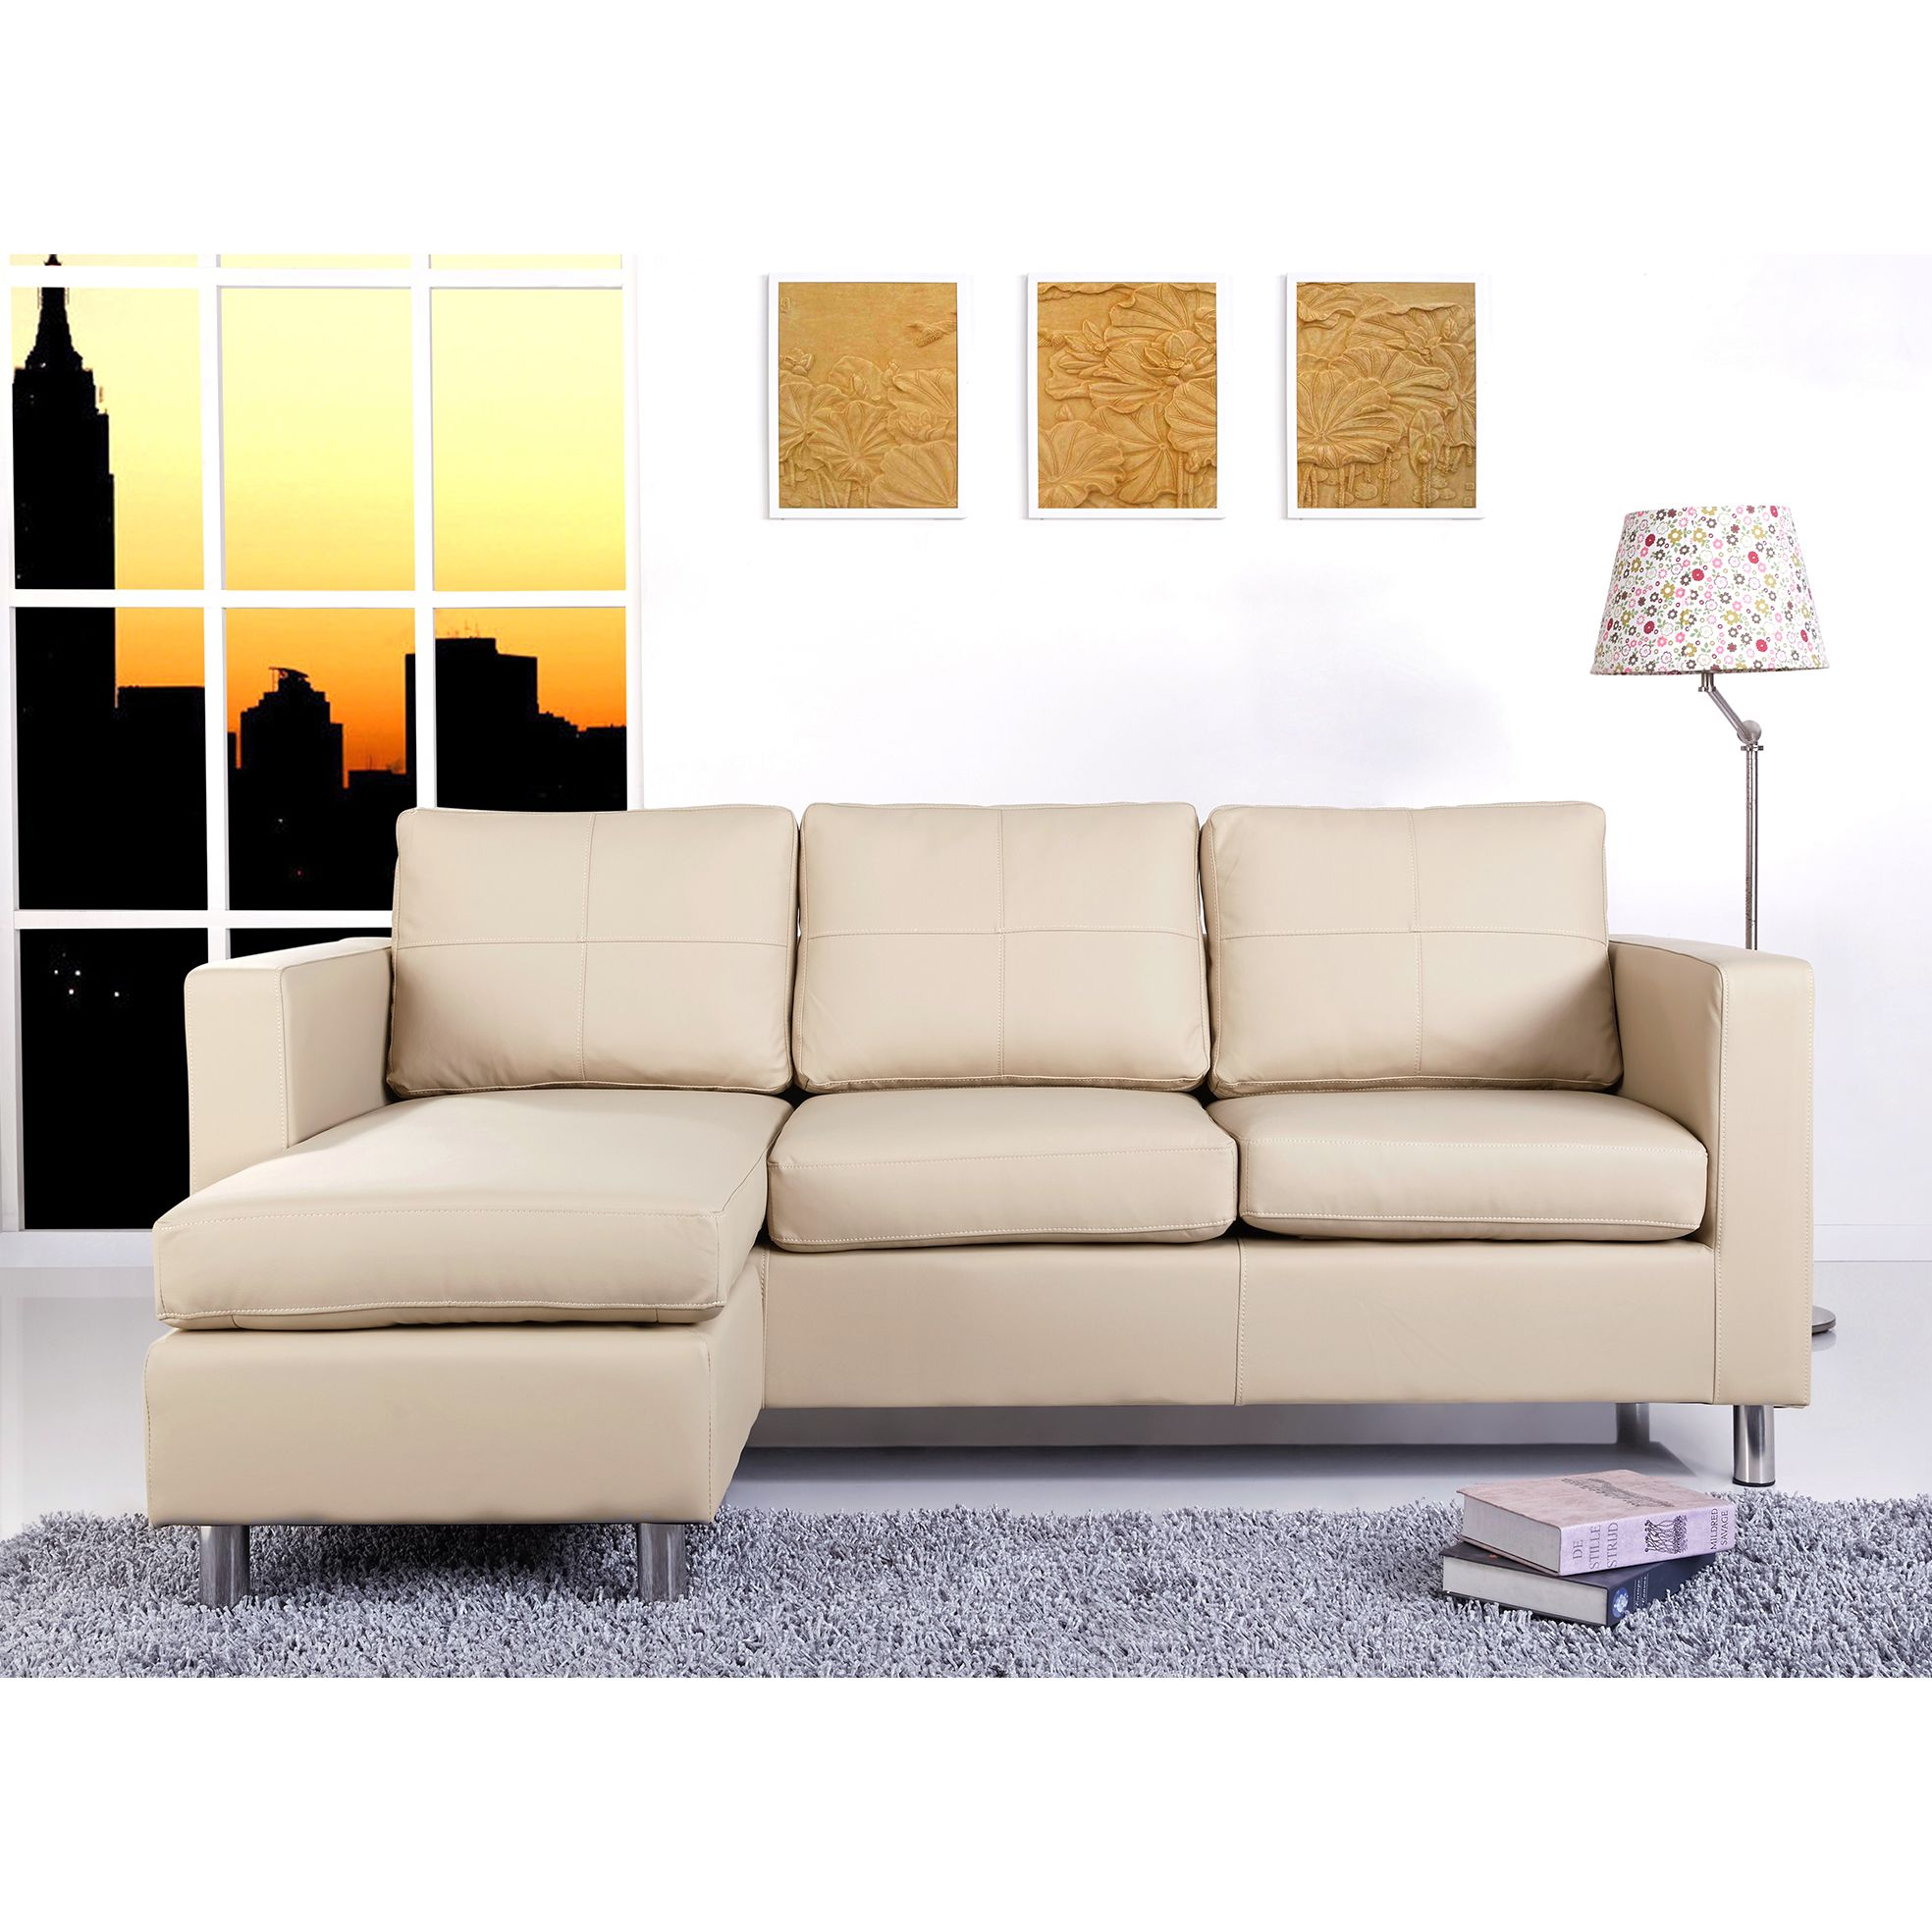 Charmant Enhance The Comfort And Style In Your Living Space With The Contemporary  Design Of This Exquisite